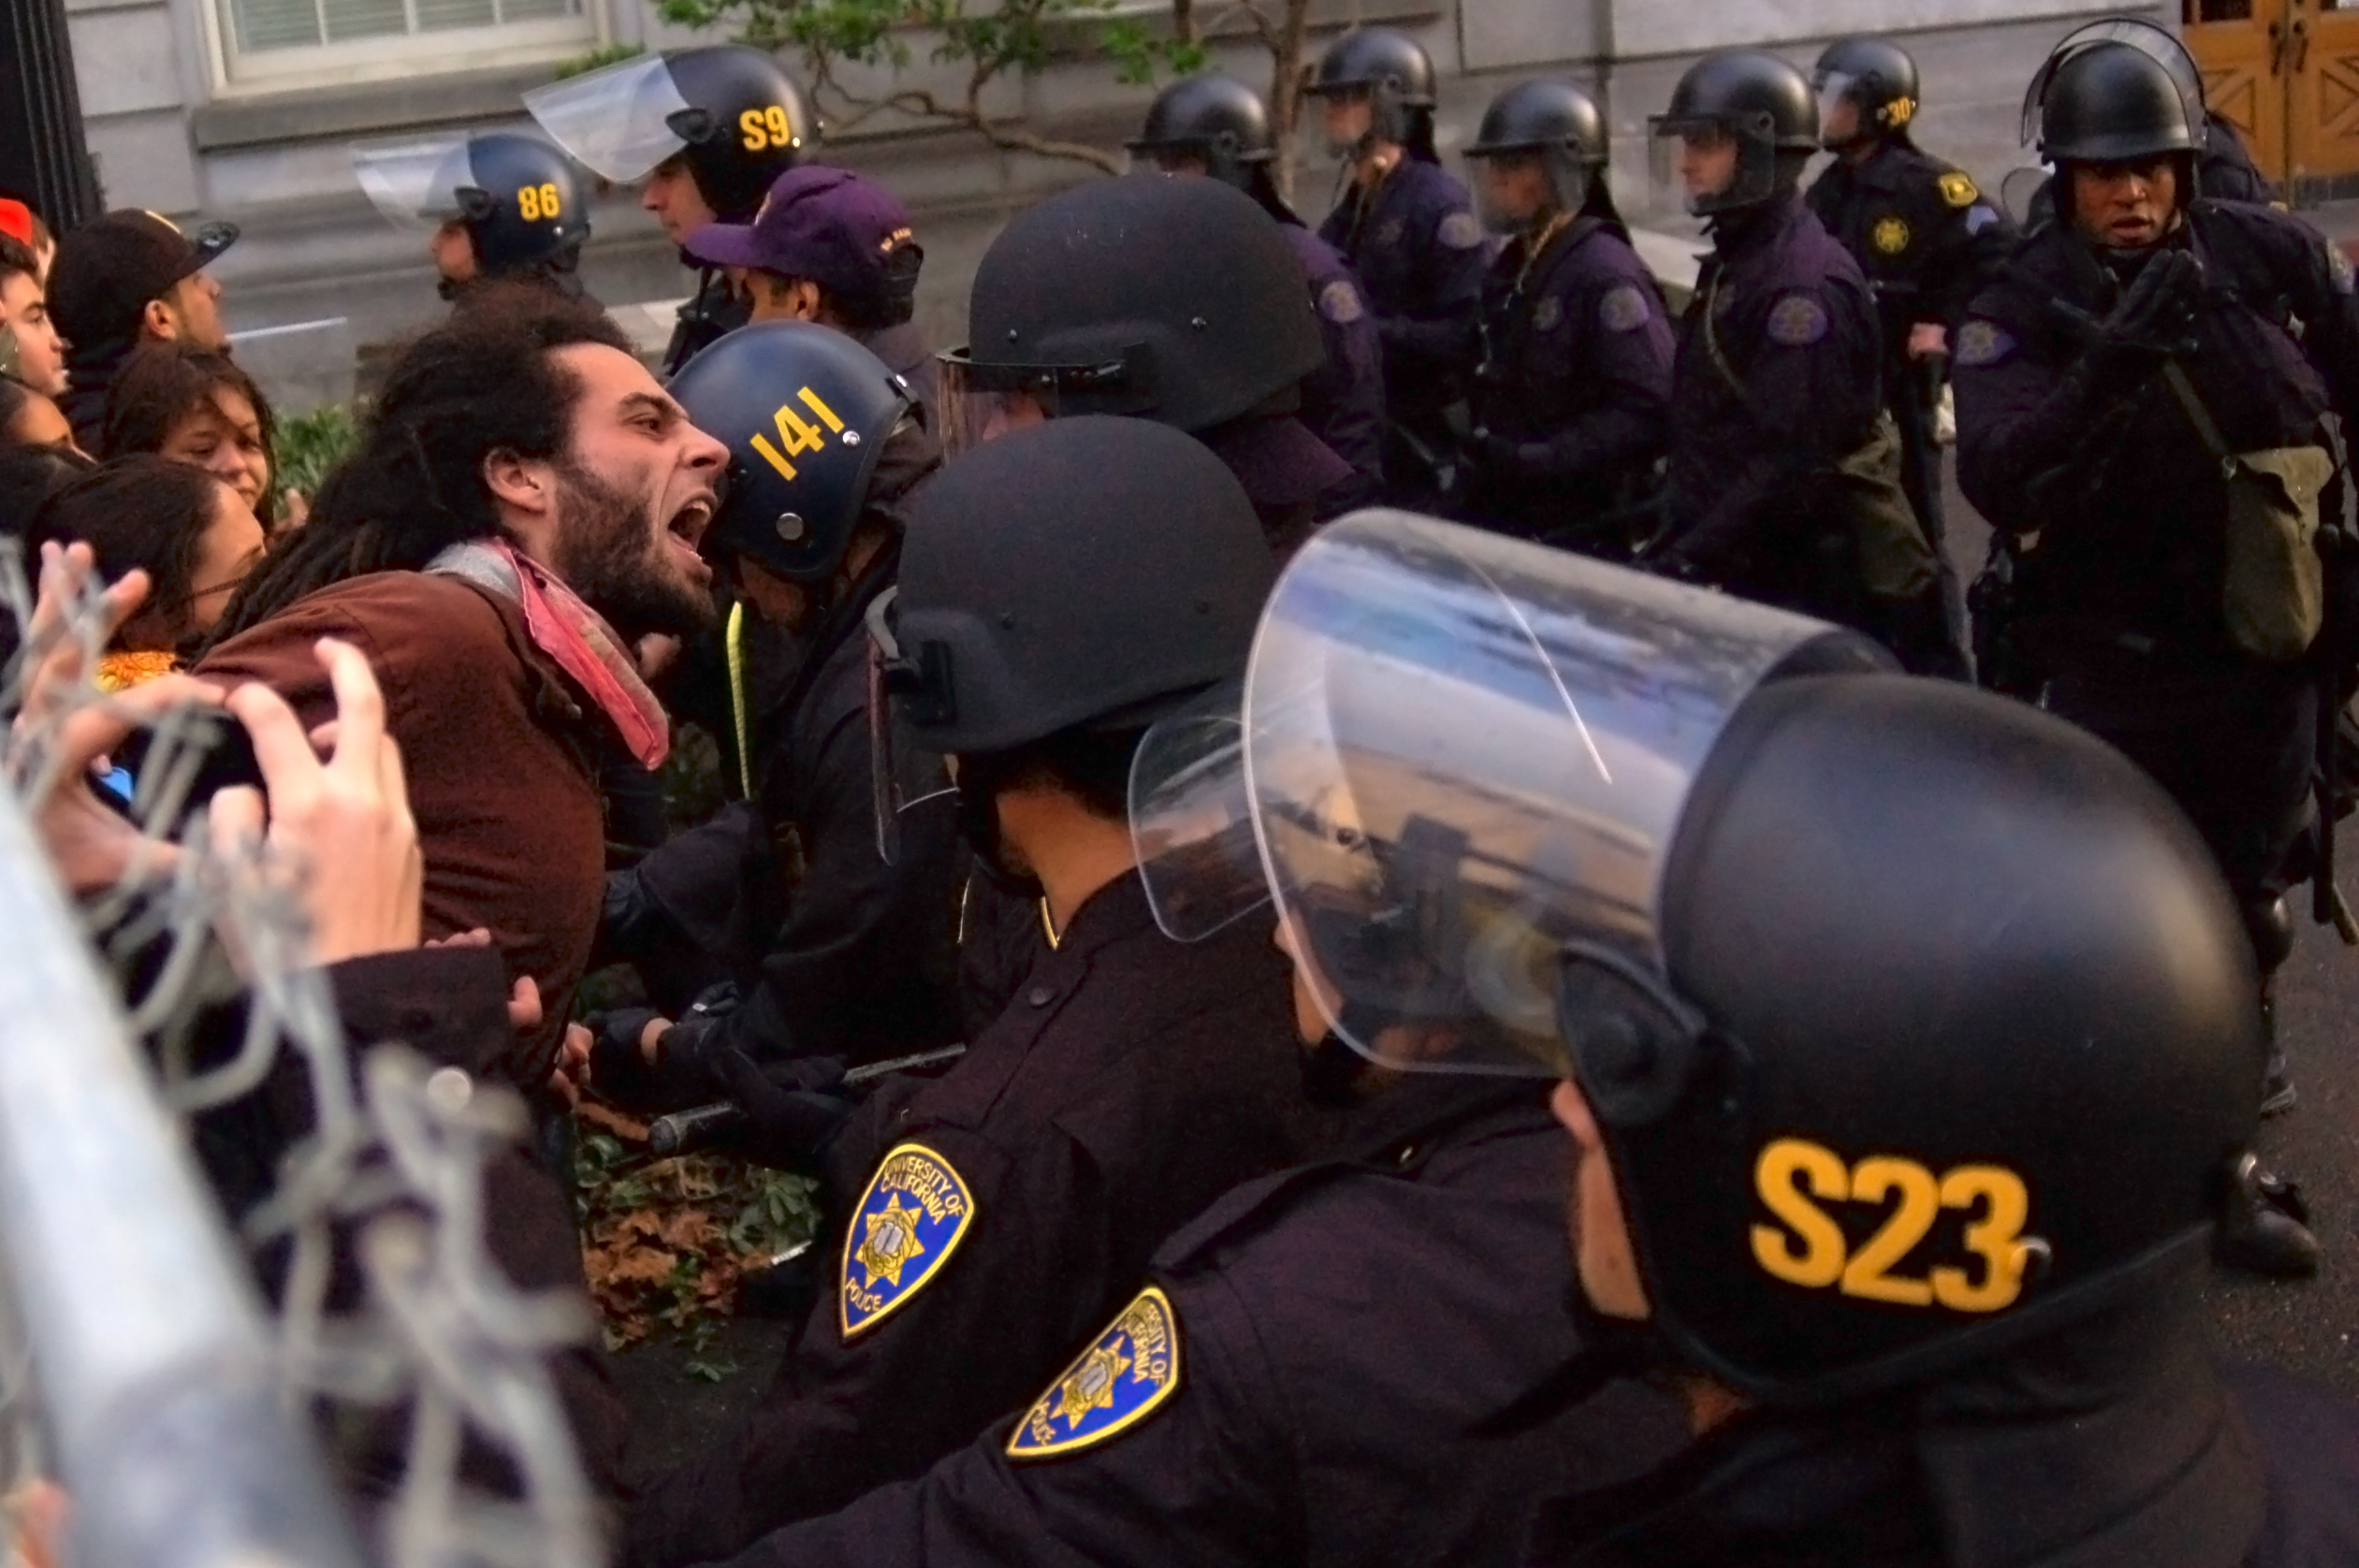 Protesters at UC Berkeley clash with police on November 20, 2009.